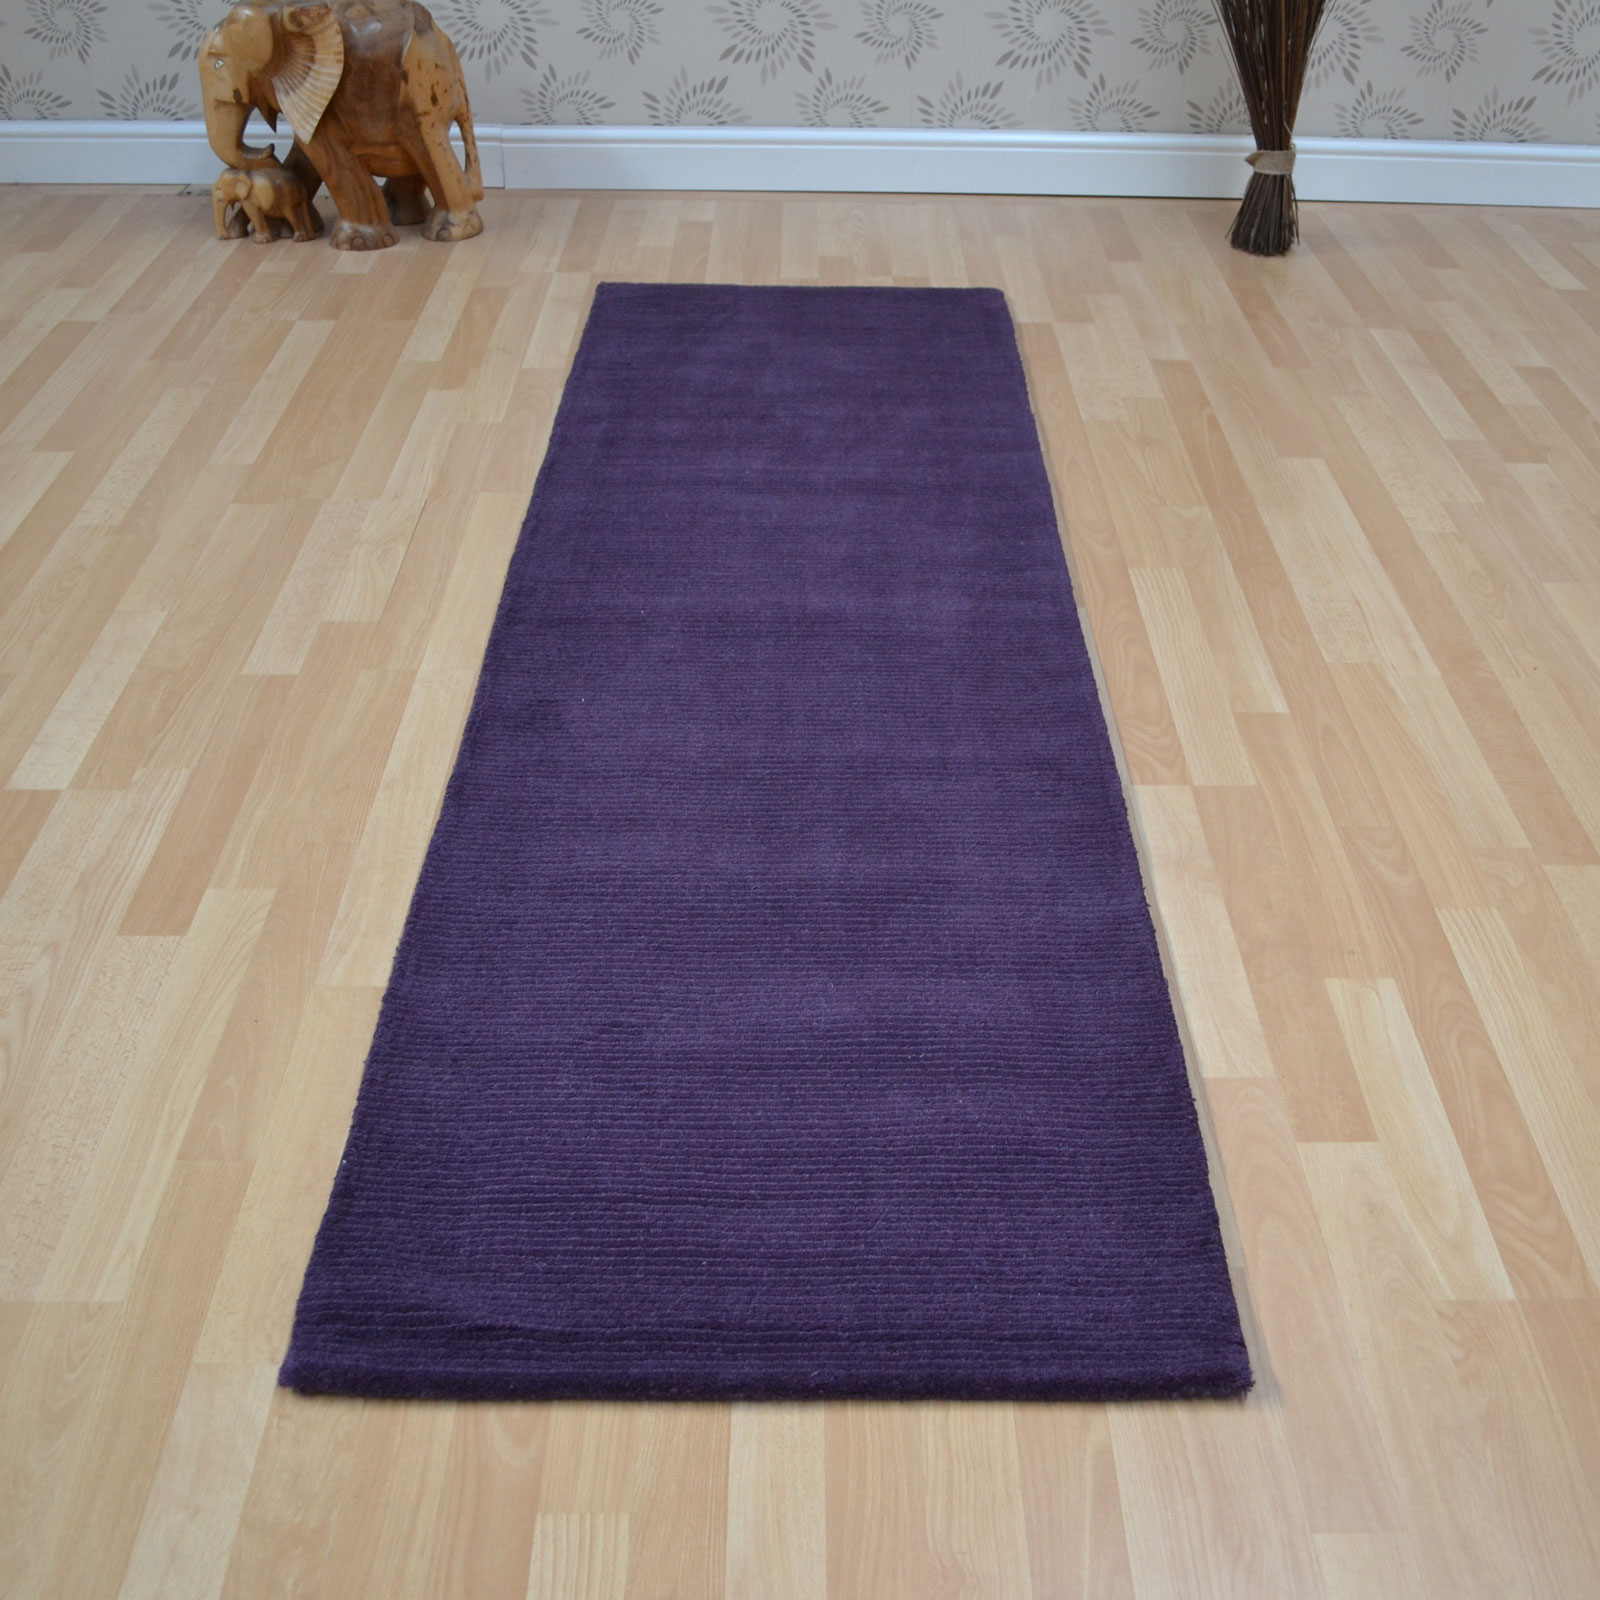 Brighton Plain Purple Wool Hallway Runners